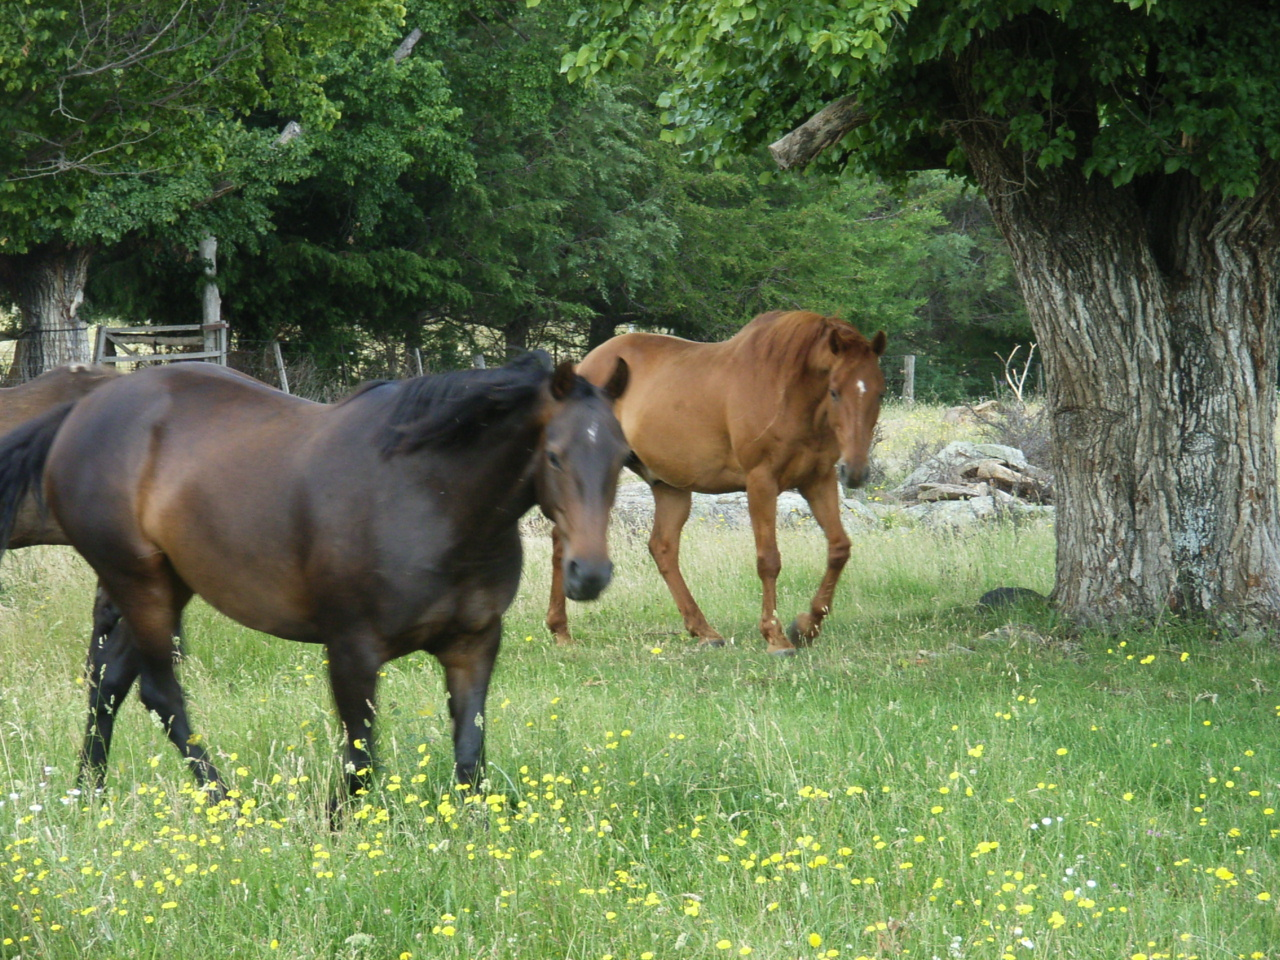 Farm Activities - Meet the horses